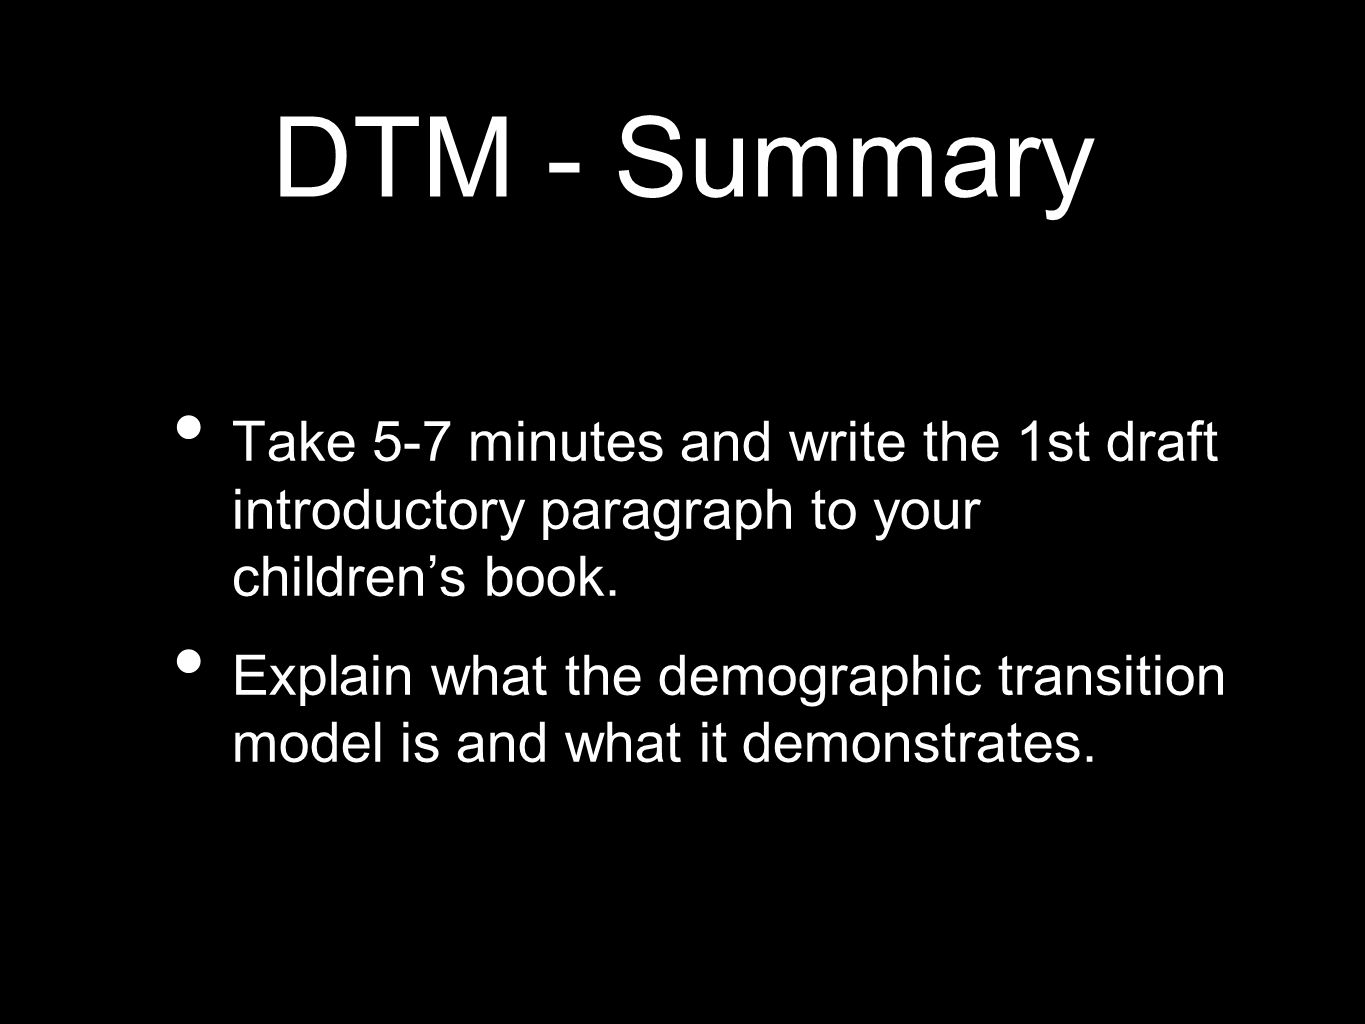 DTM - Summary Take 5-7 minutes and write the 1st draft introductory paragraph to your children's book.